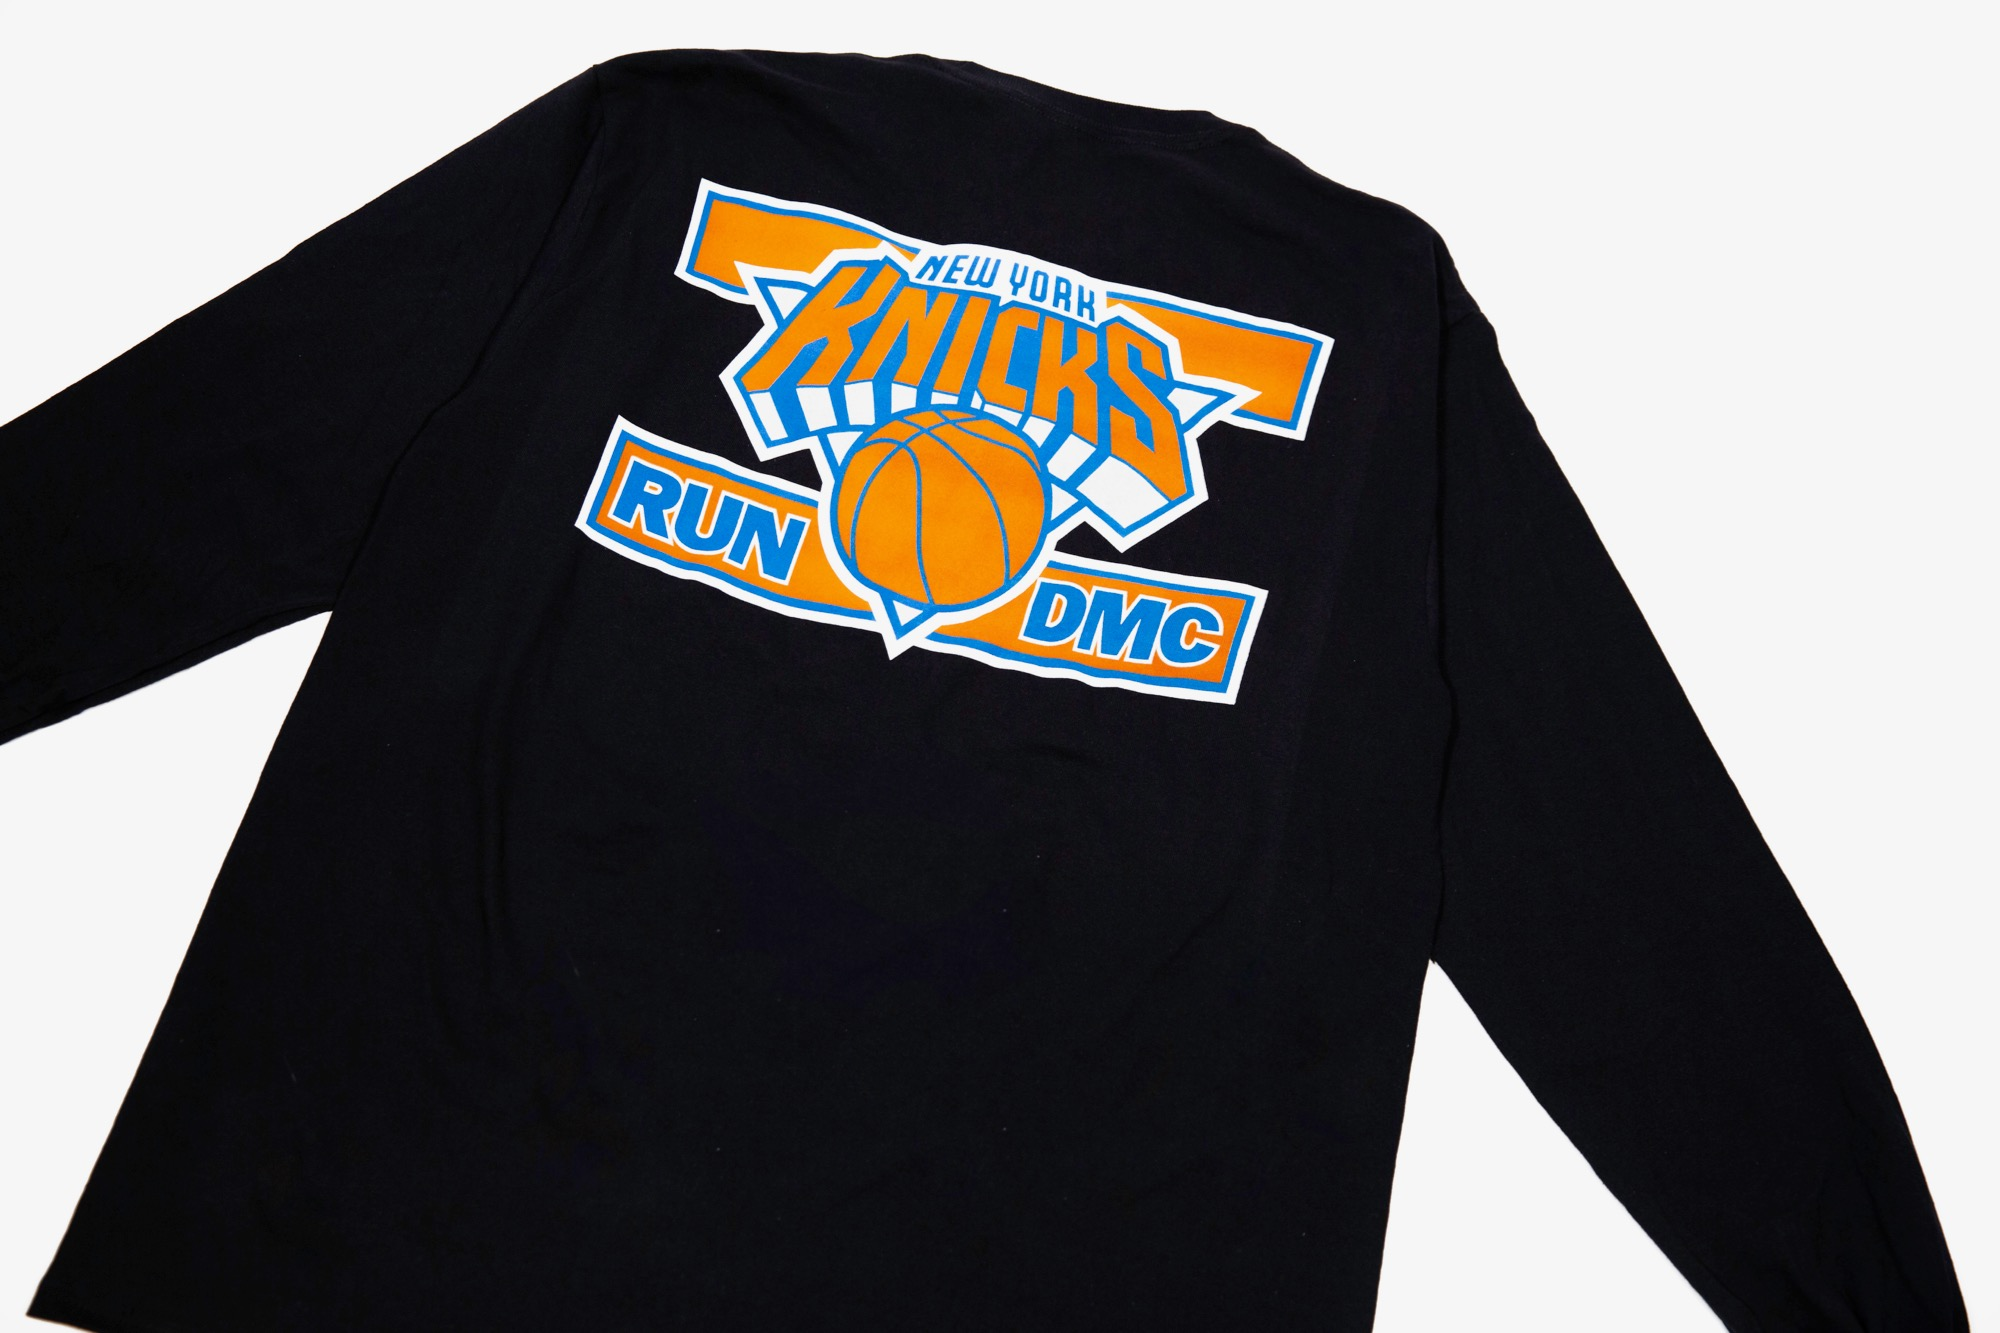 Run-DMC x NY Knicks merch